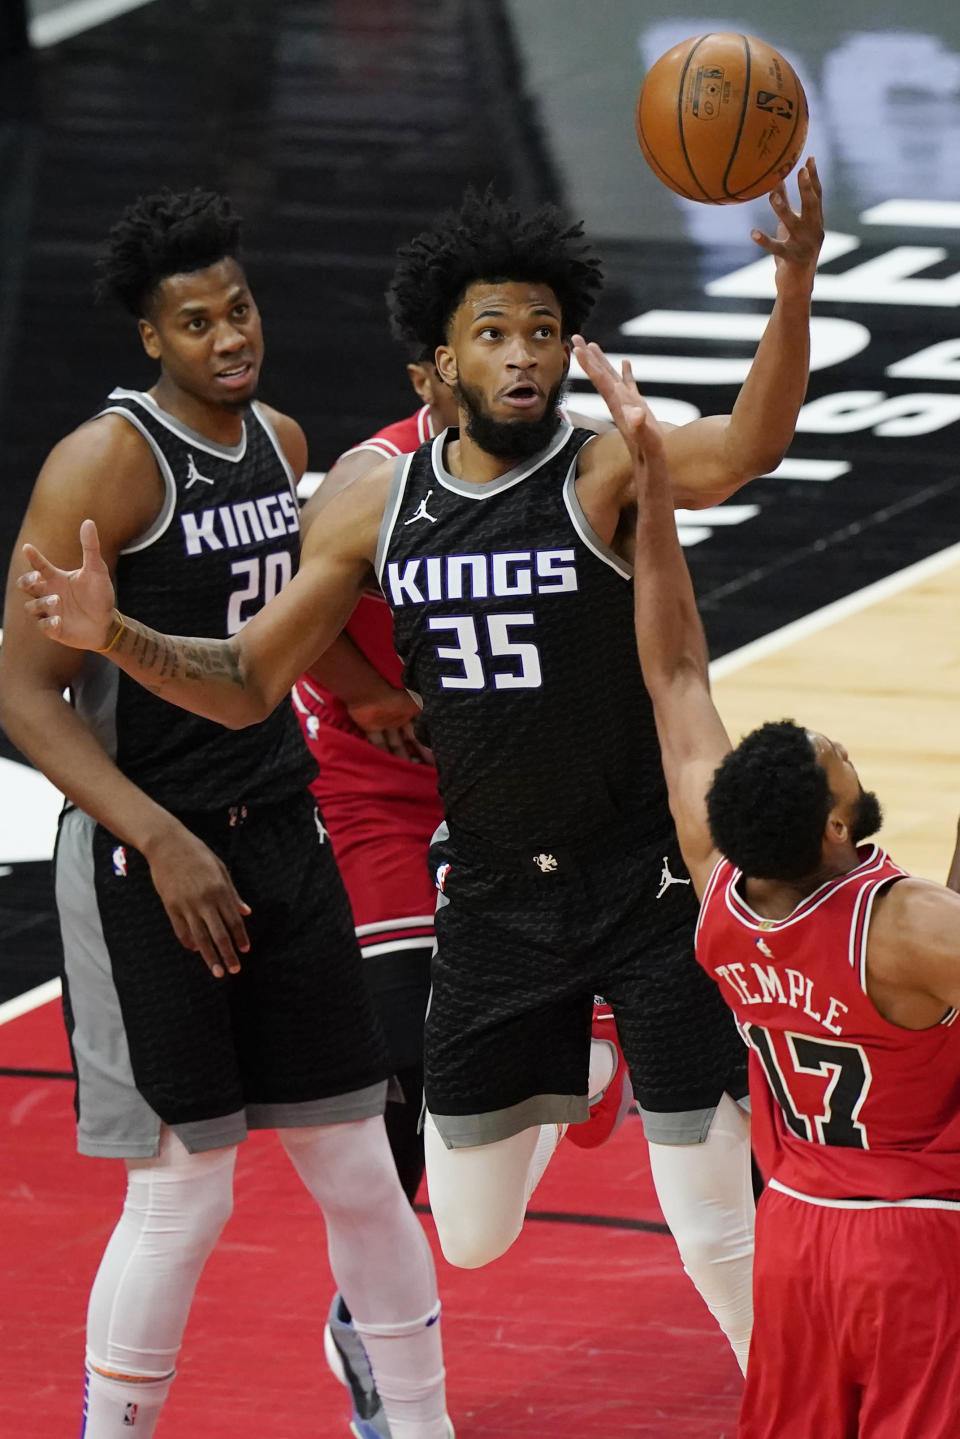 Sacramento Kings forward Marvin Bagley III (35) rebounds the ball against Chicago Bulls guard Garrett Temple as Sacramento Kings center Hassan Whiteside, left, watches during the first half of an NBA basketball game in Chicago, Saturday, Feb. 20, 2021. (AP Photo/Nam Y. Huh)